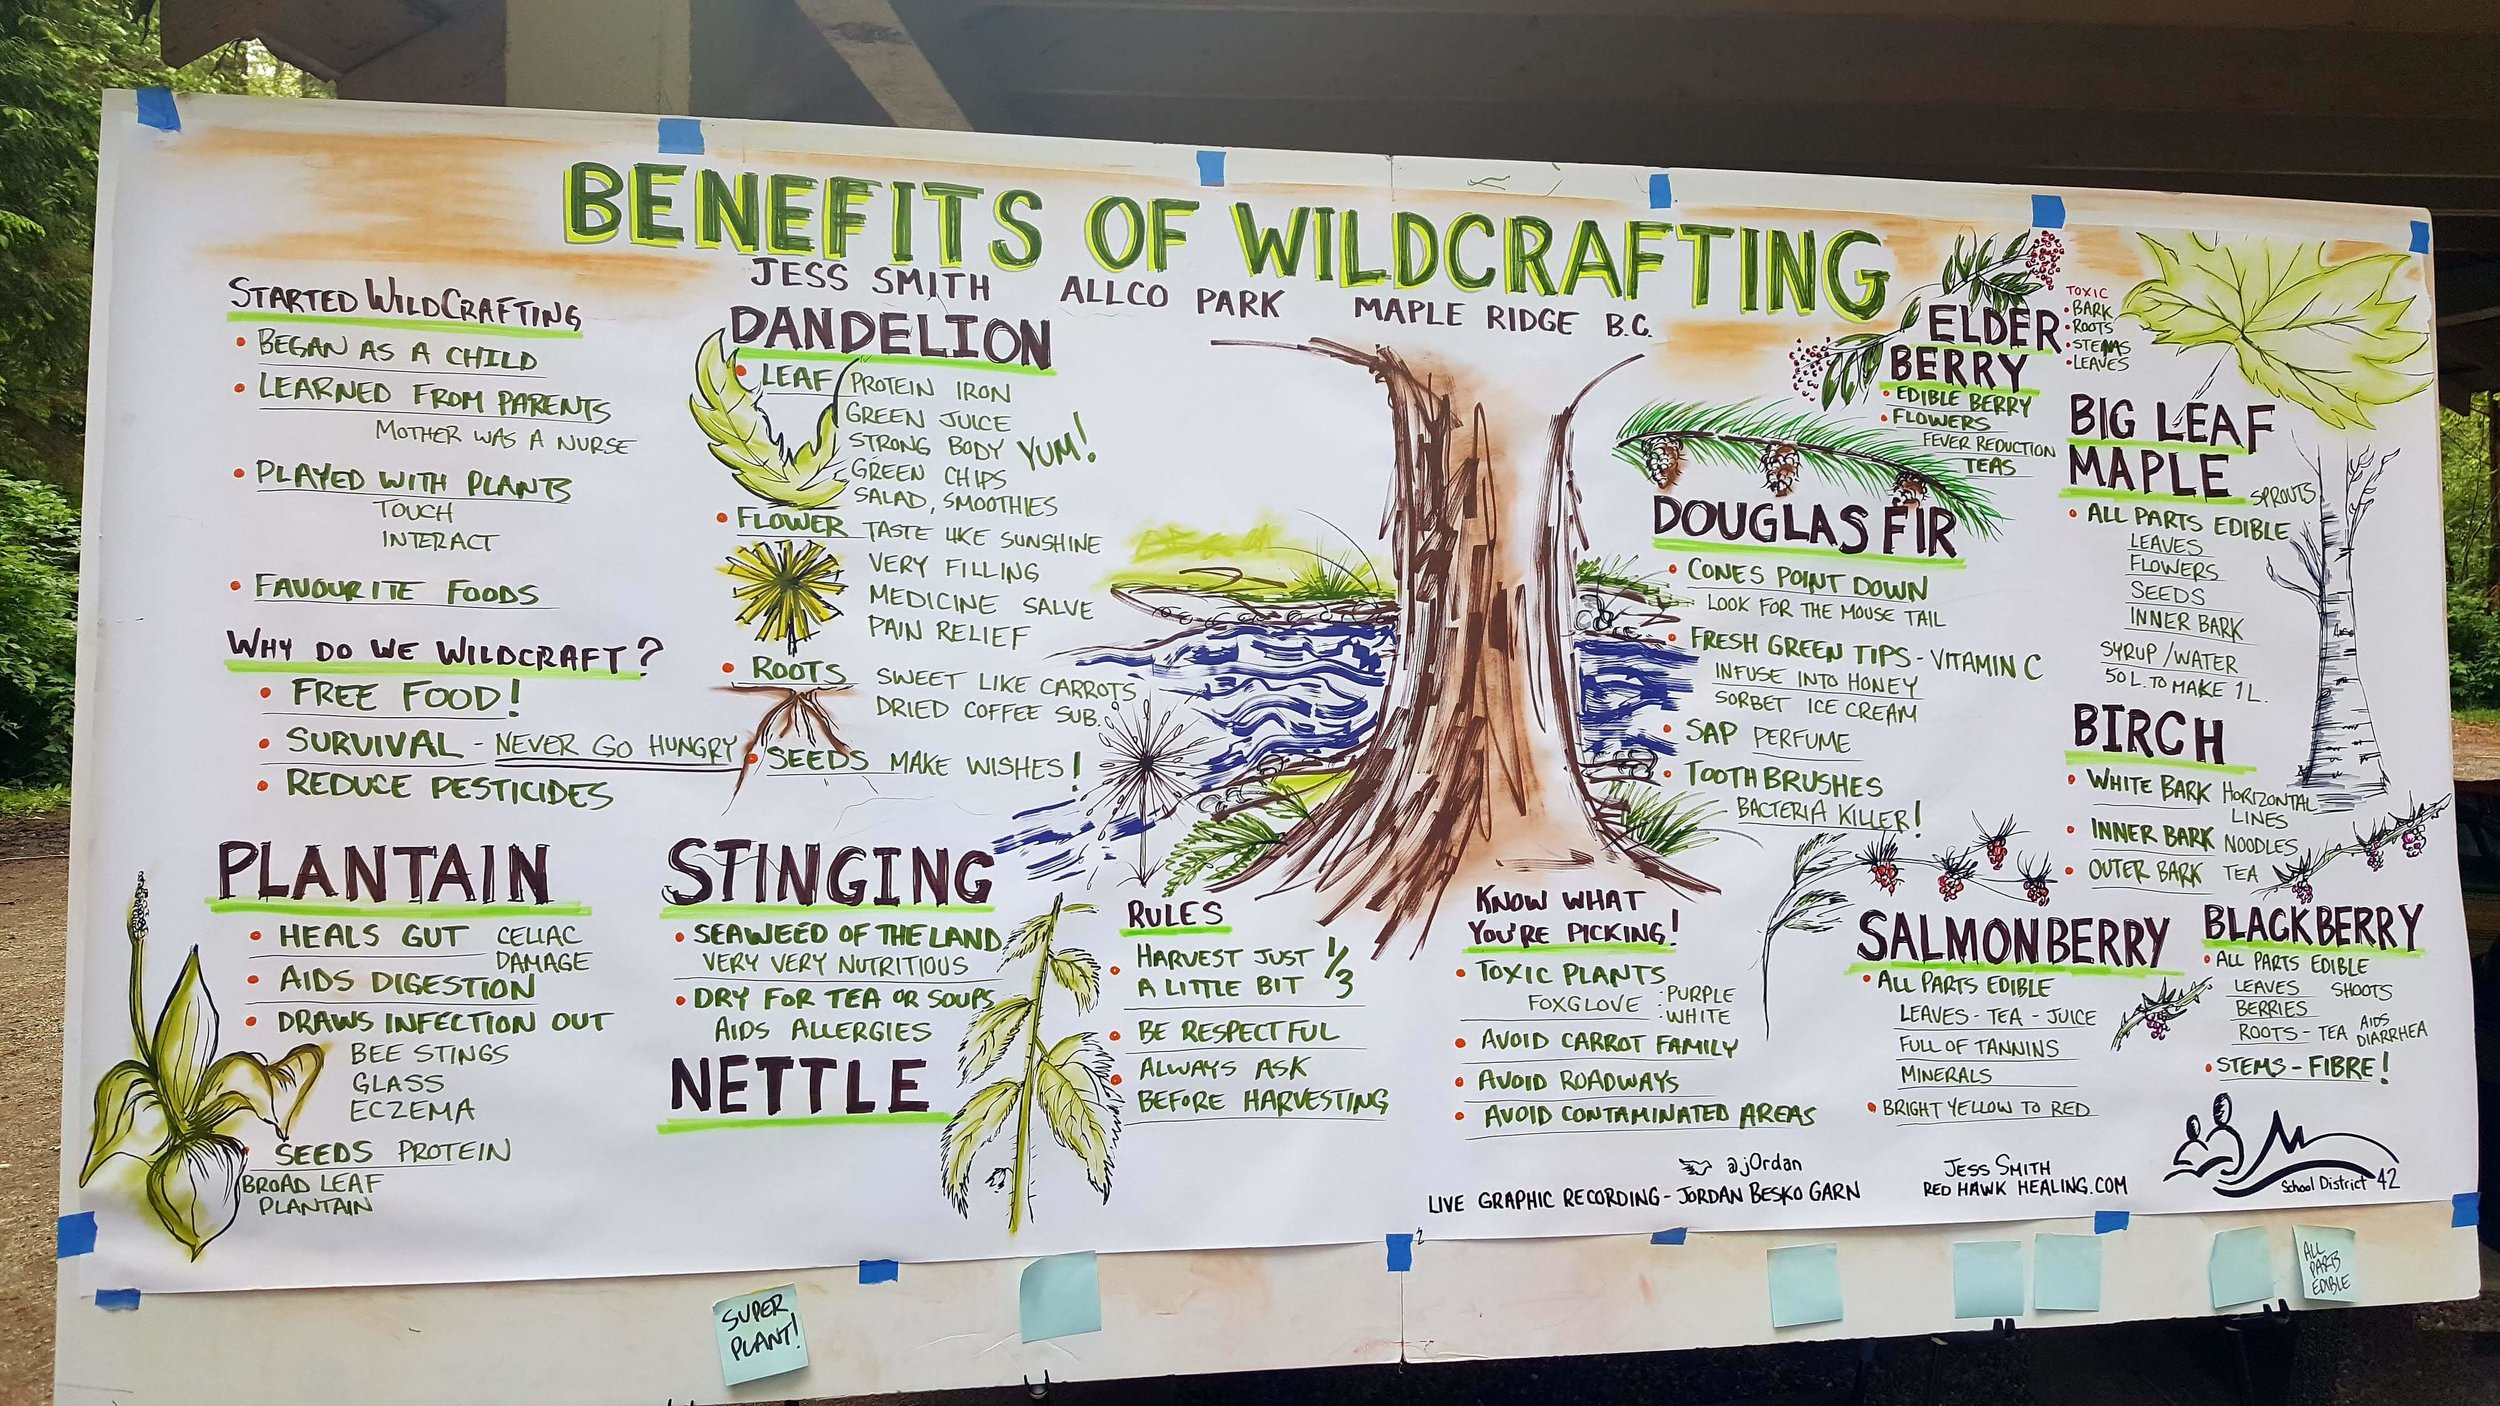 BENEFITS OF WILDCRAFTING - JESS SMITH, RED HAWK HEALING - Live graphic recording for Maple Ridge Environmental School (School District 42) at Allco Park, Maple Ridge, B.C. June 15, 2018.- 80 kids, teachers, principal in the audience during the presentation.Format: 4' x 8' presentation paper